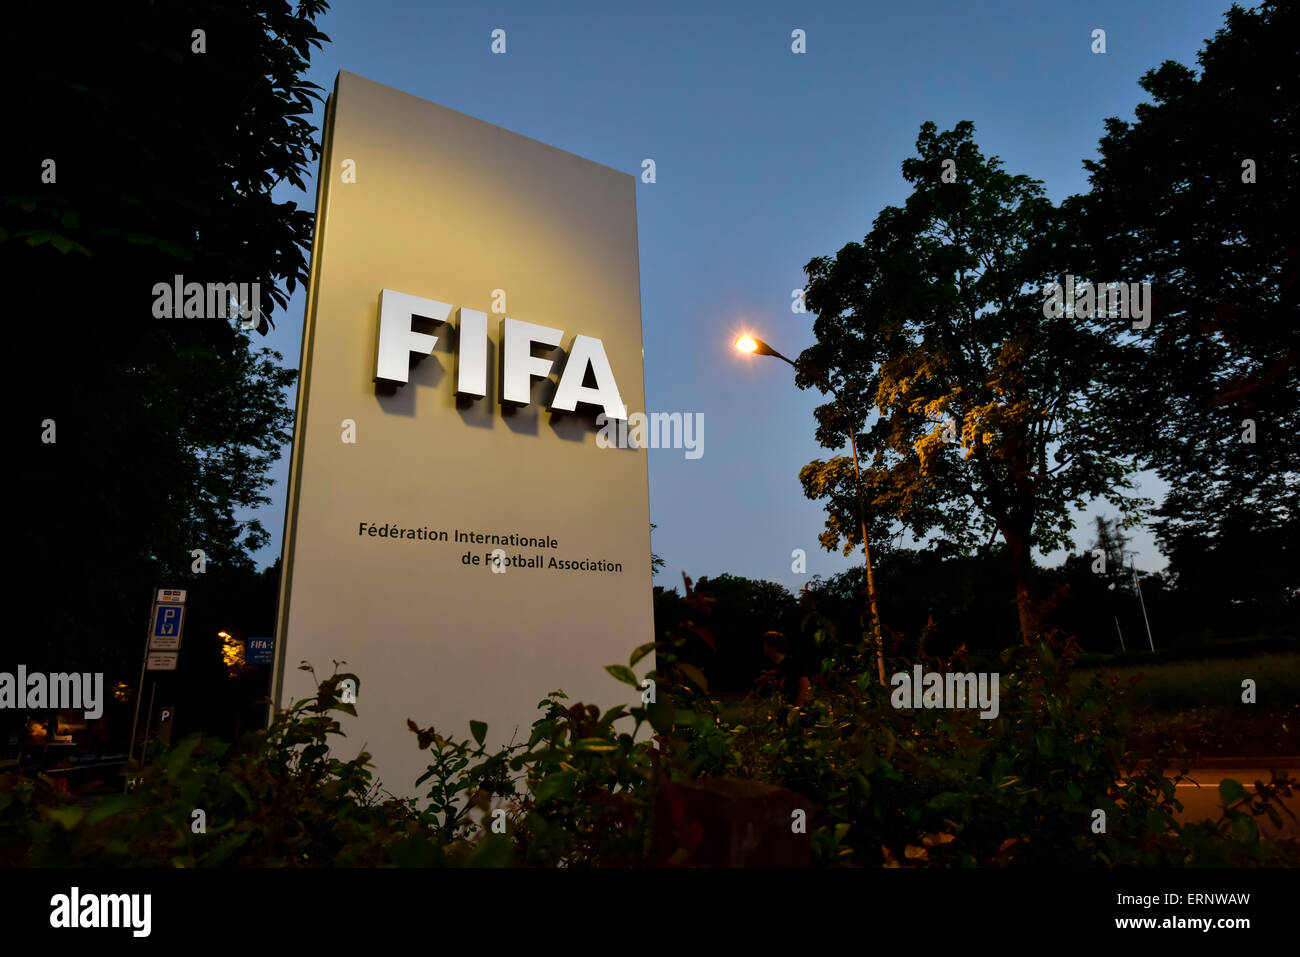 Entrance sign to the FIFA headquarters in Zurich, taken on the night Sepp Blatter announced his resignation as FIFA - Stock Image